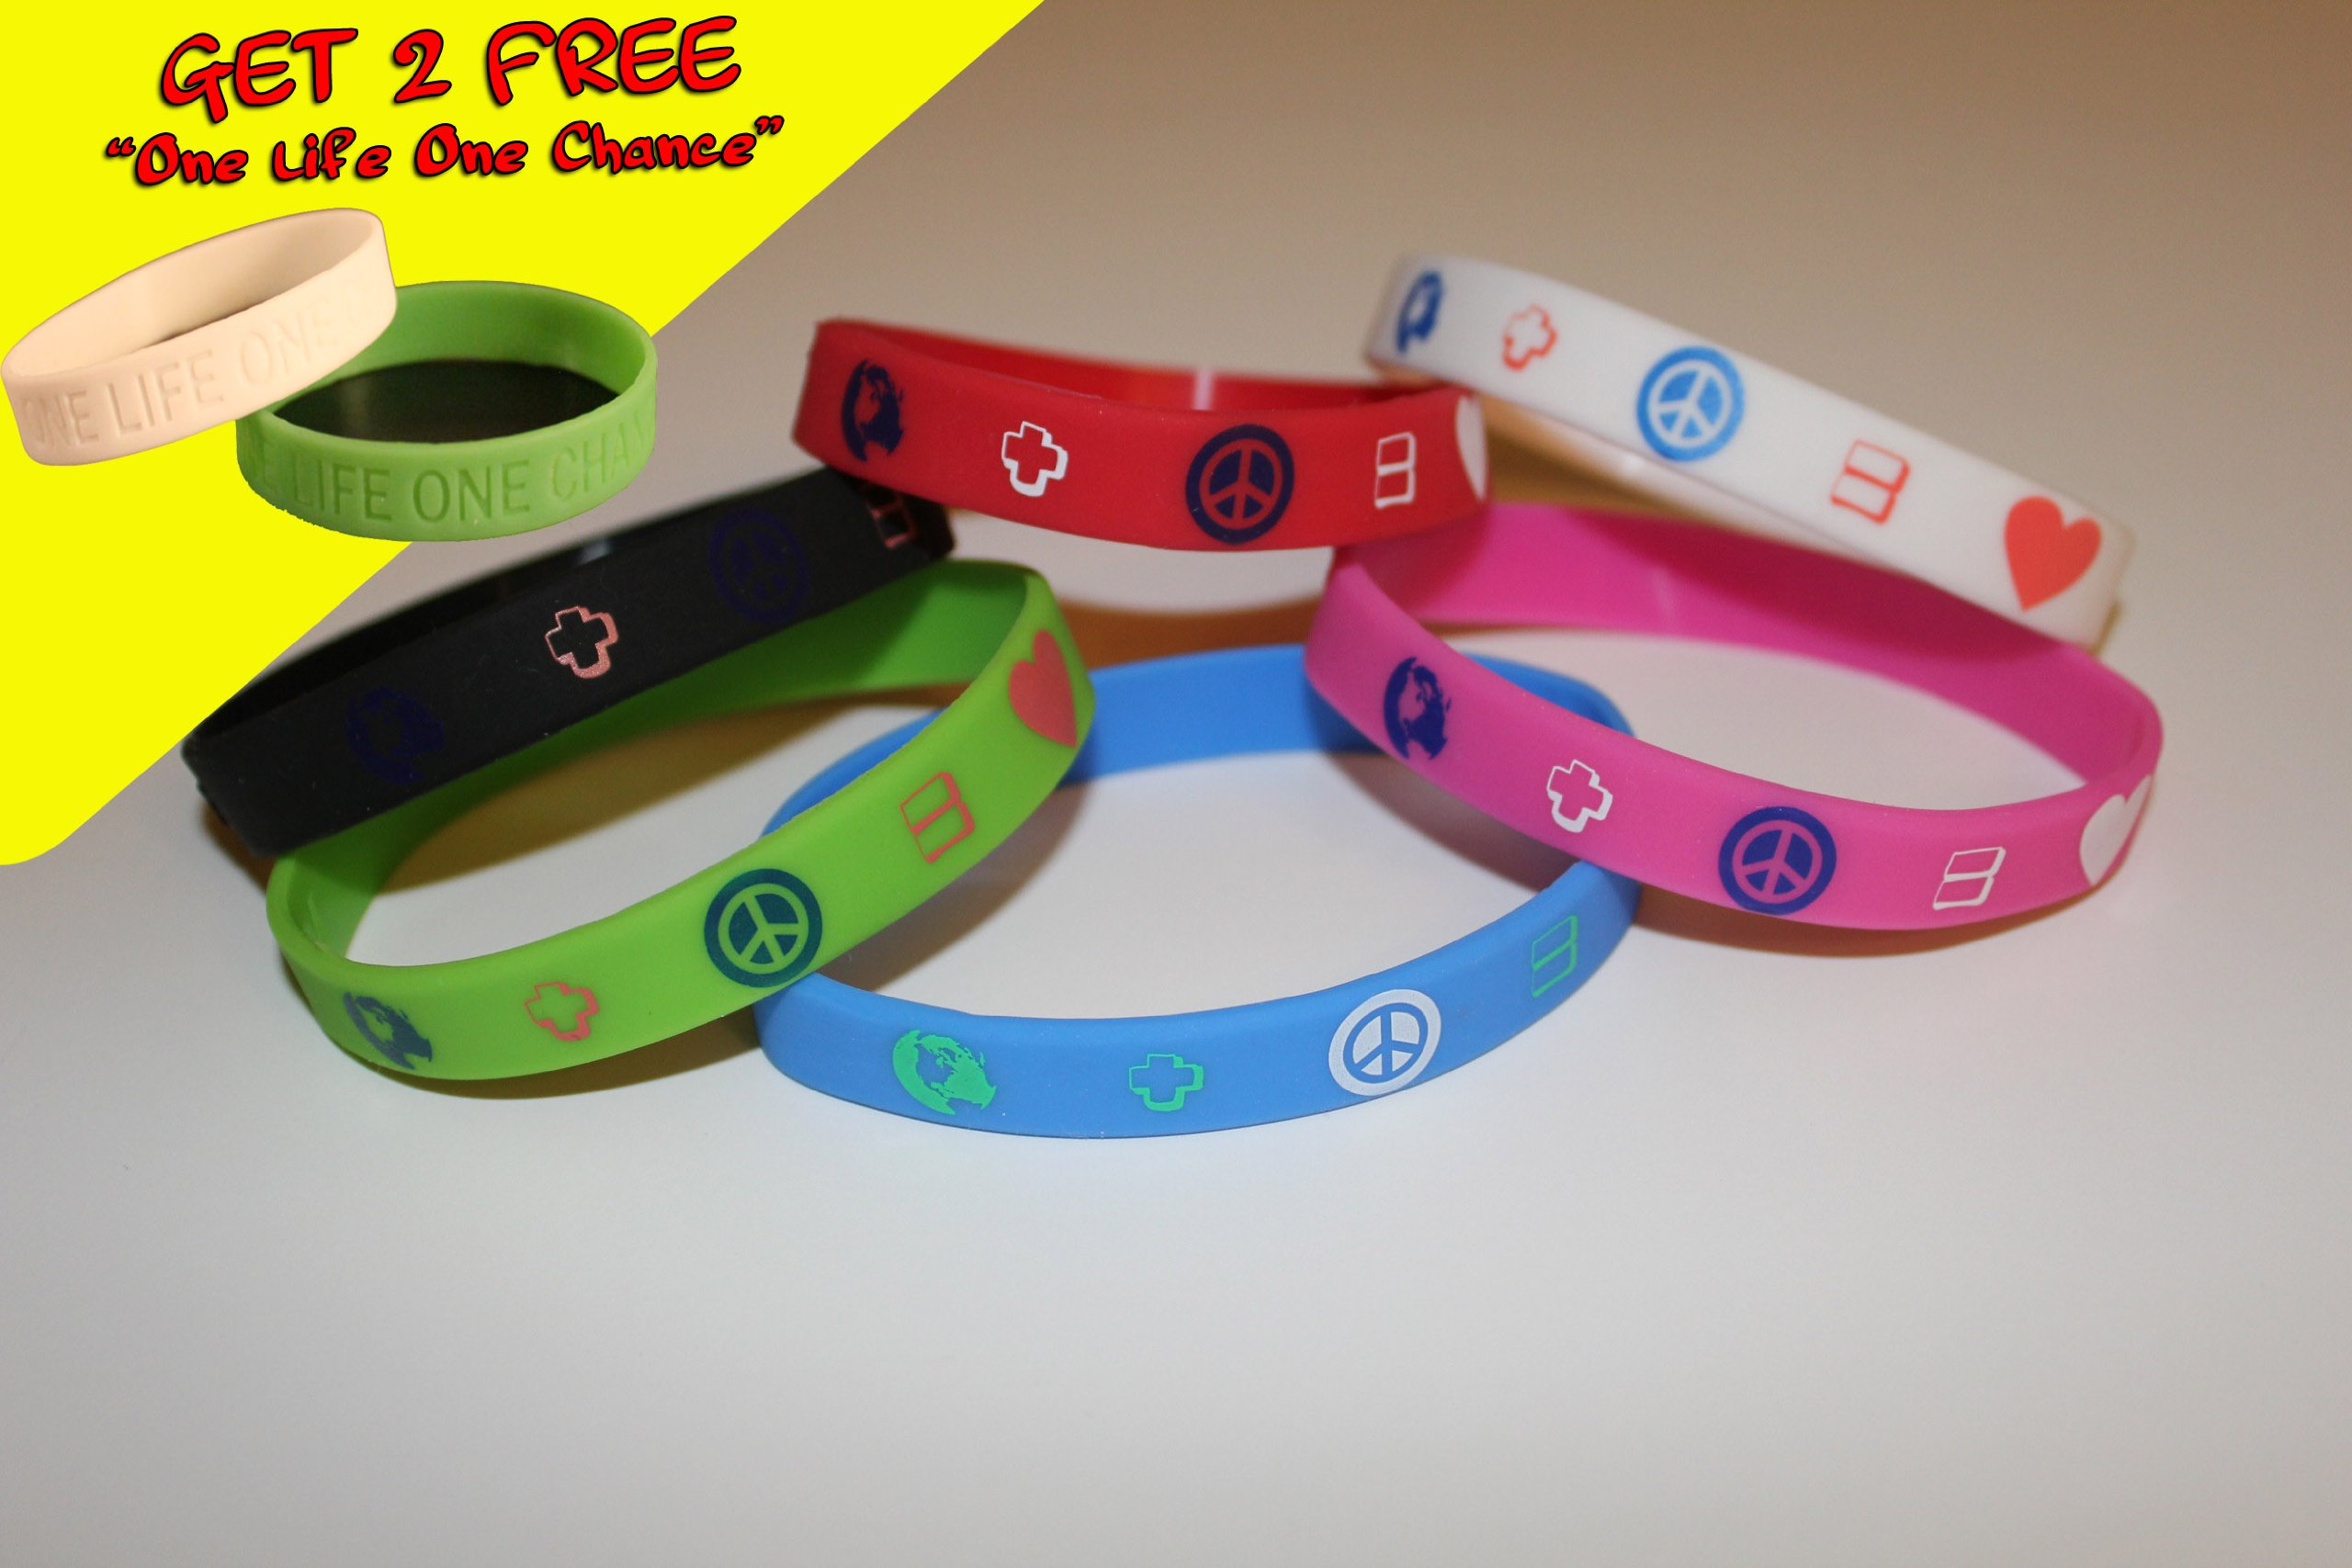 2 FREE One Life One Chance w/ purchase of PARTY FAVORS 7PK ONE OF EACH COLOR Silicone Wristband ''earth+peace=love'' for kids, teens, unisex by tifepiphany (Image #1)